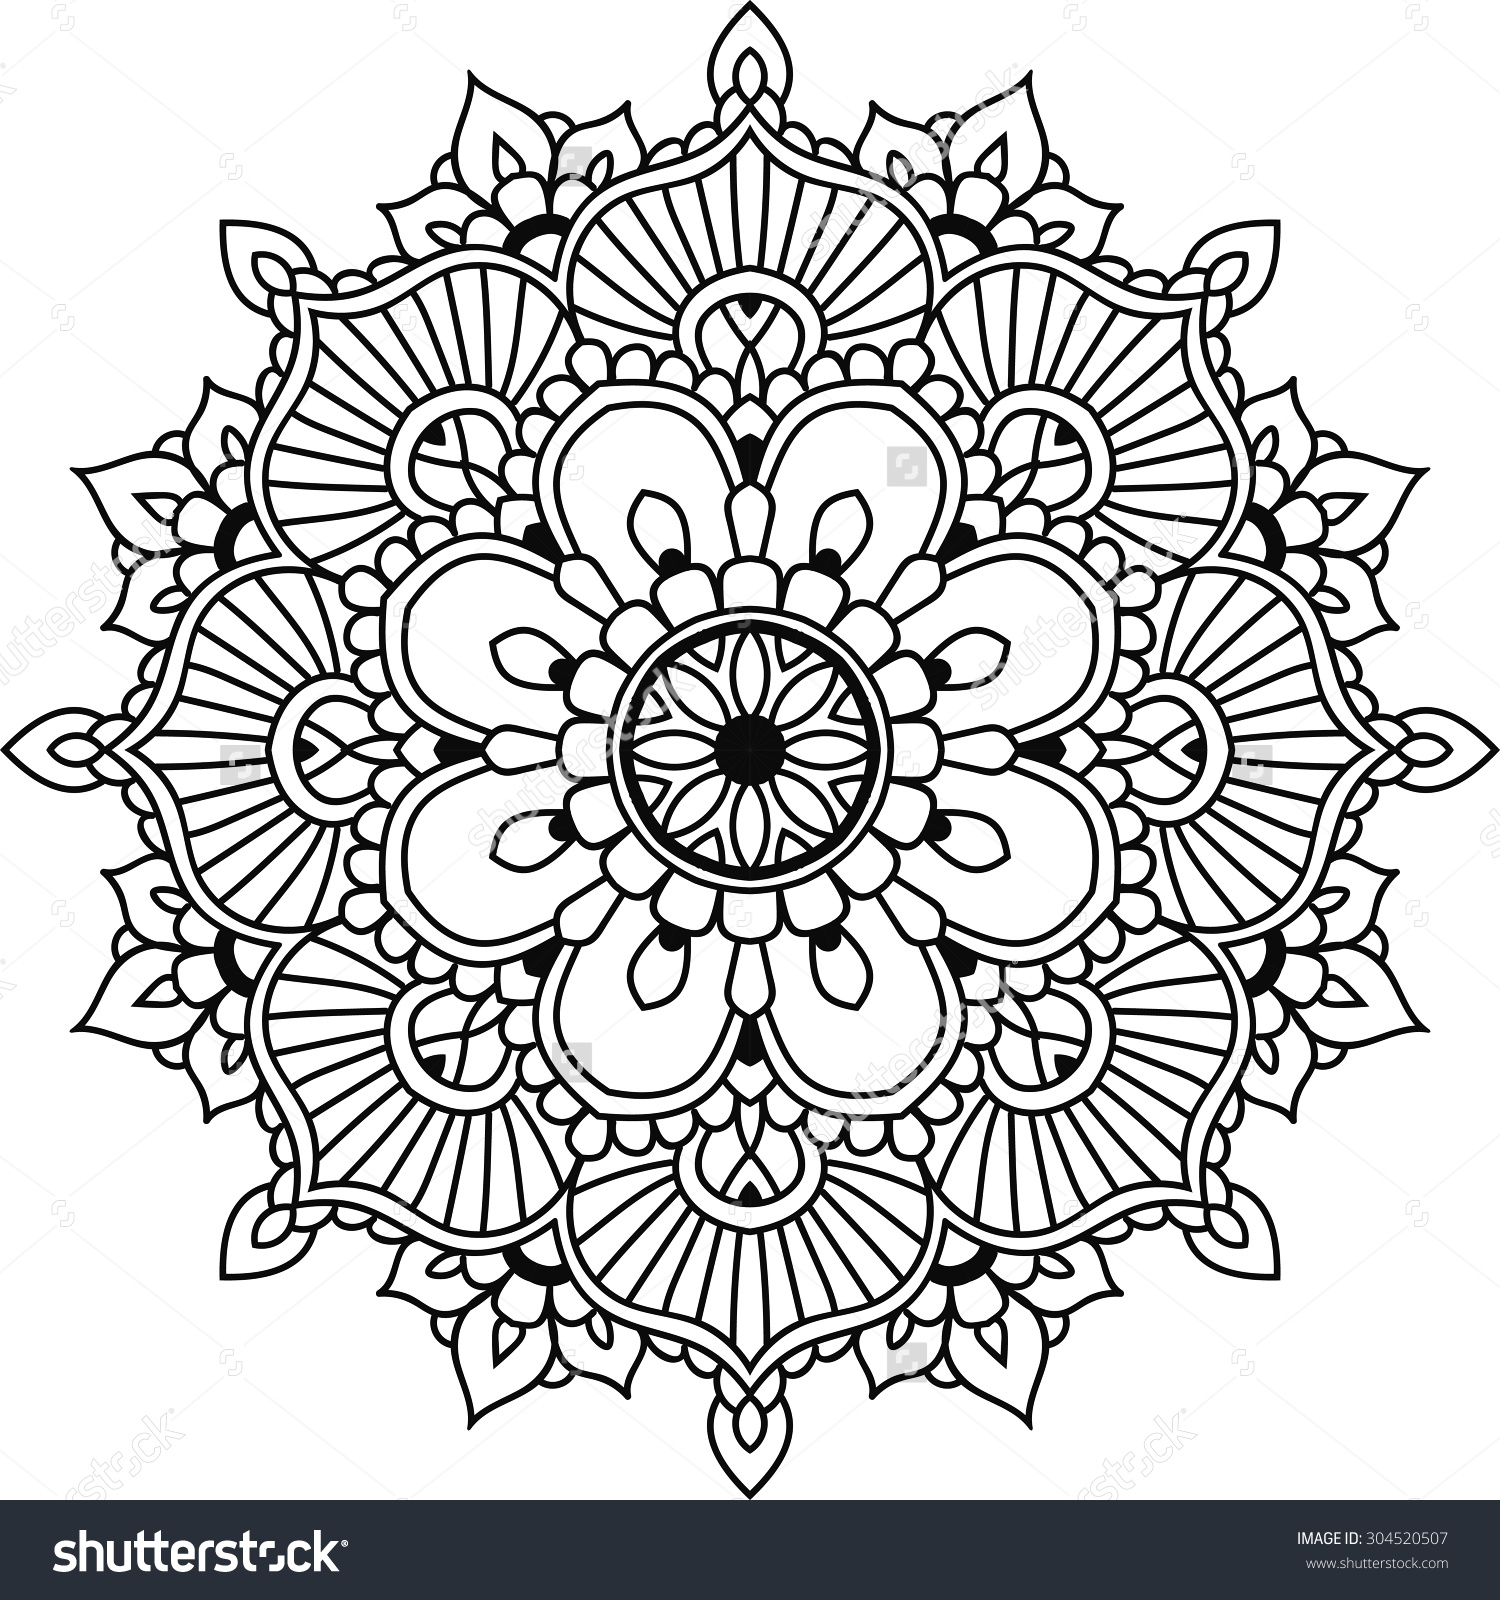 Simple Floral Mandala Design Mehendi Stock Vector 304520507.